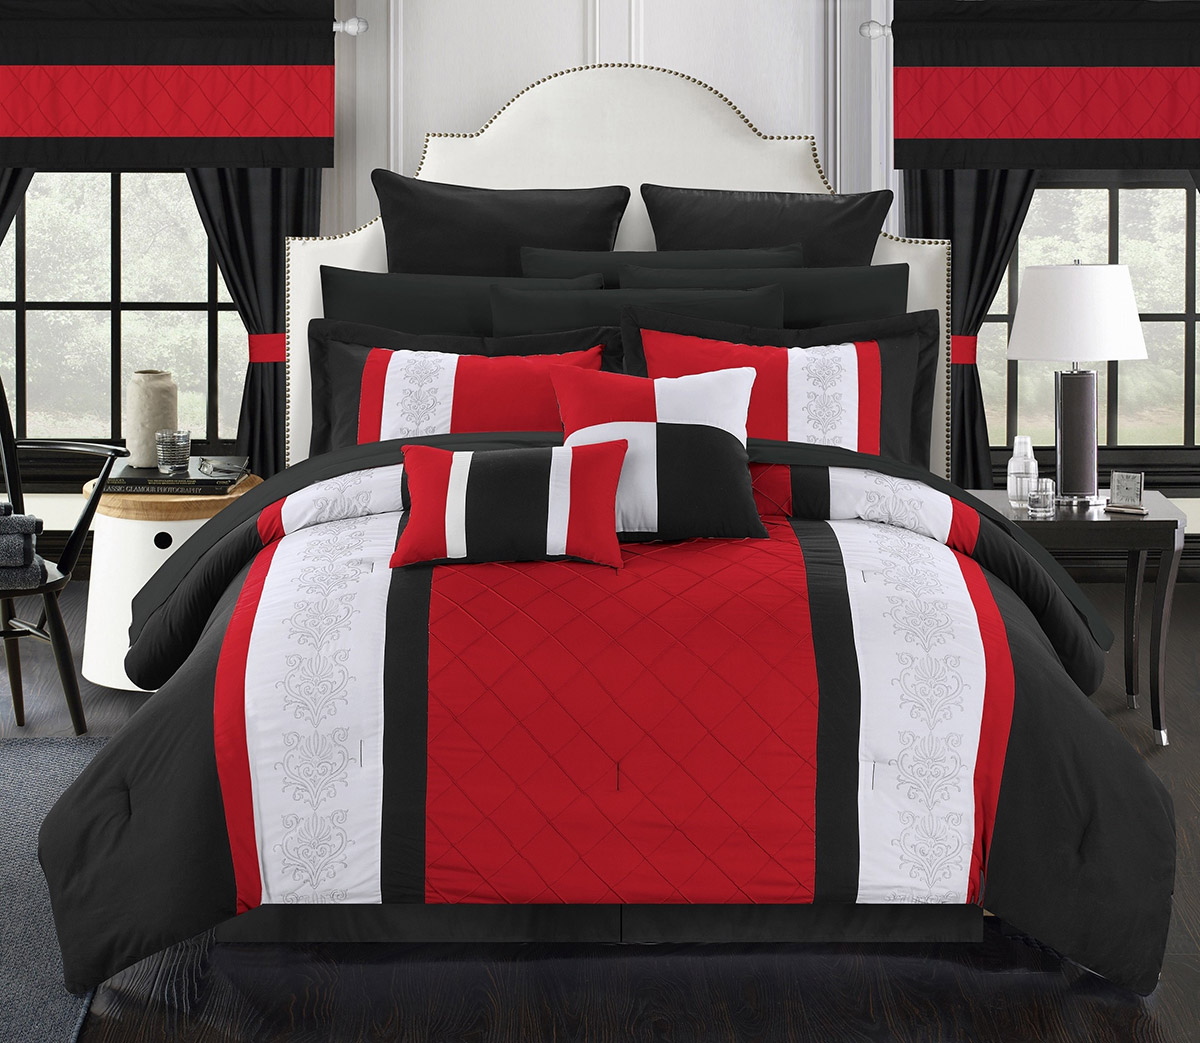 red-and-black-bedroom